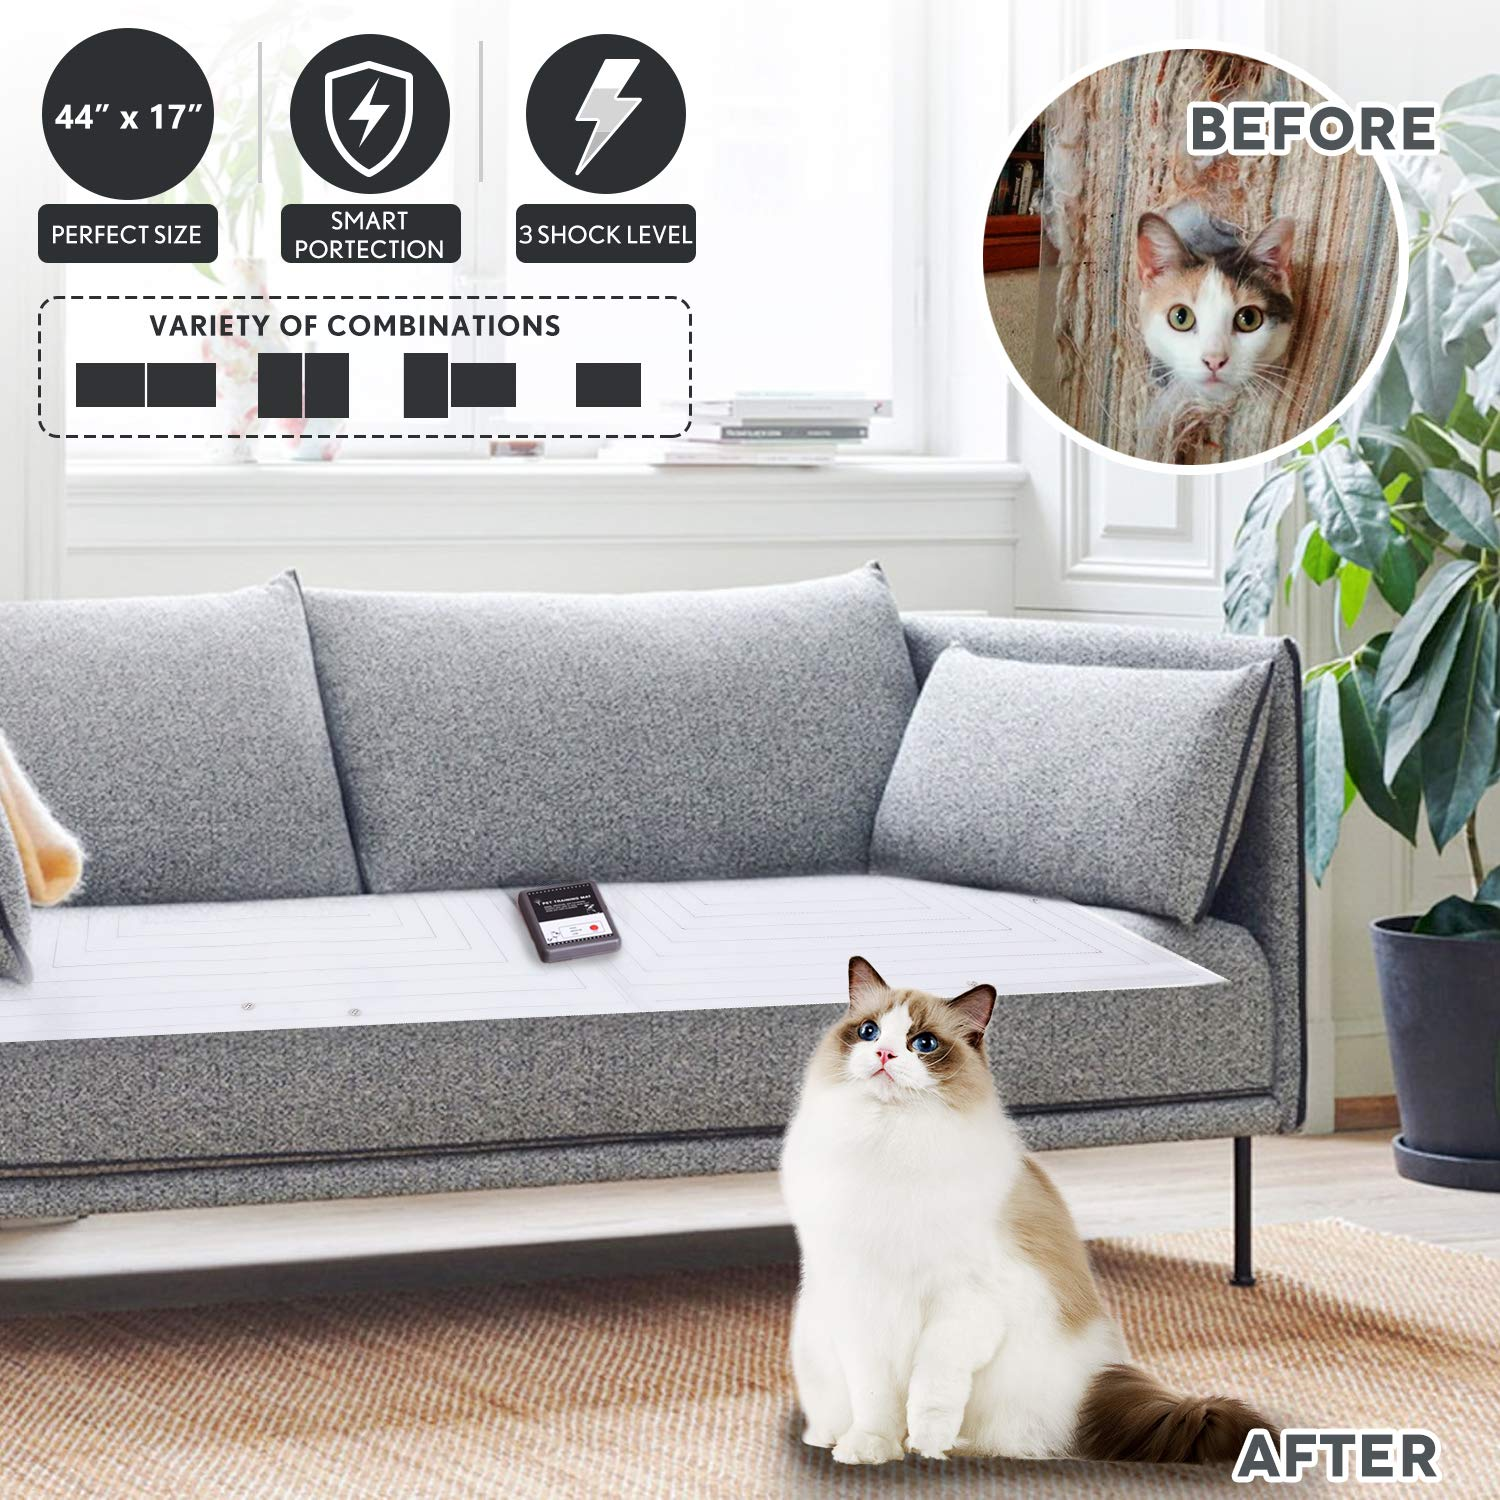 Upgraded Pet Scat Cat Mat,Multi Pieces Pet Training Mat for Dogs Cats, Dog Sofa Scram, Couch Protectors from Dogs Keep Dog Off Furniture Couch Pet Barrier for Off-Limit Areas, Indoor Scat Shock Mat by lesotc